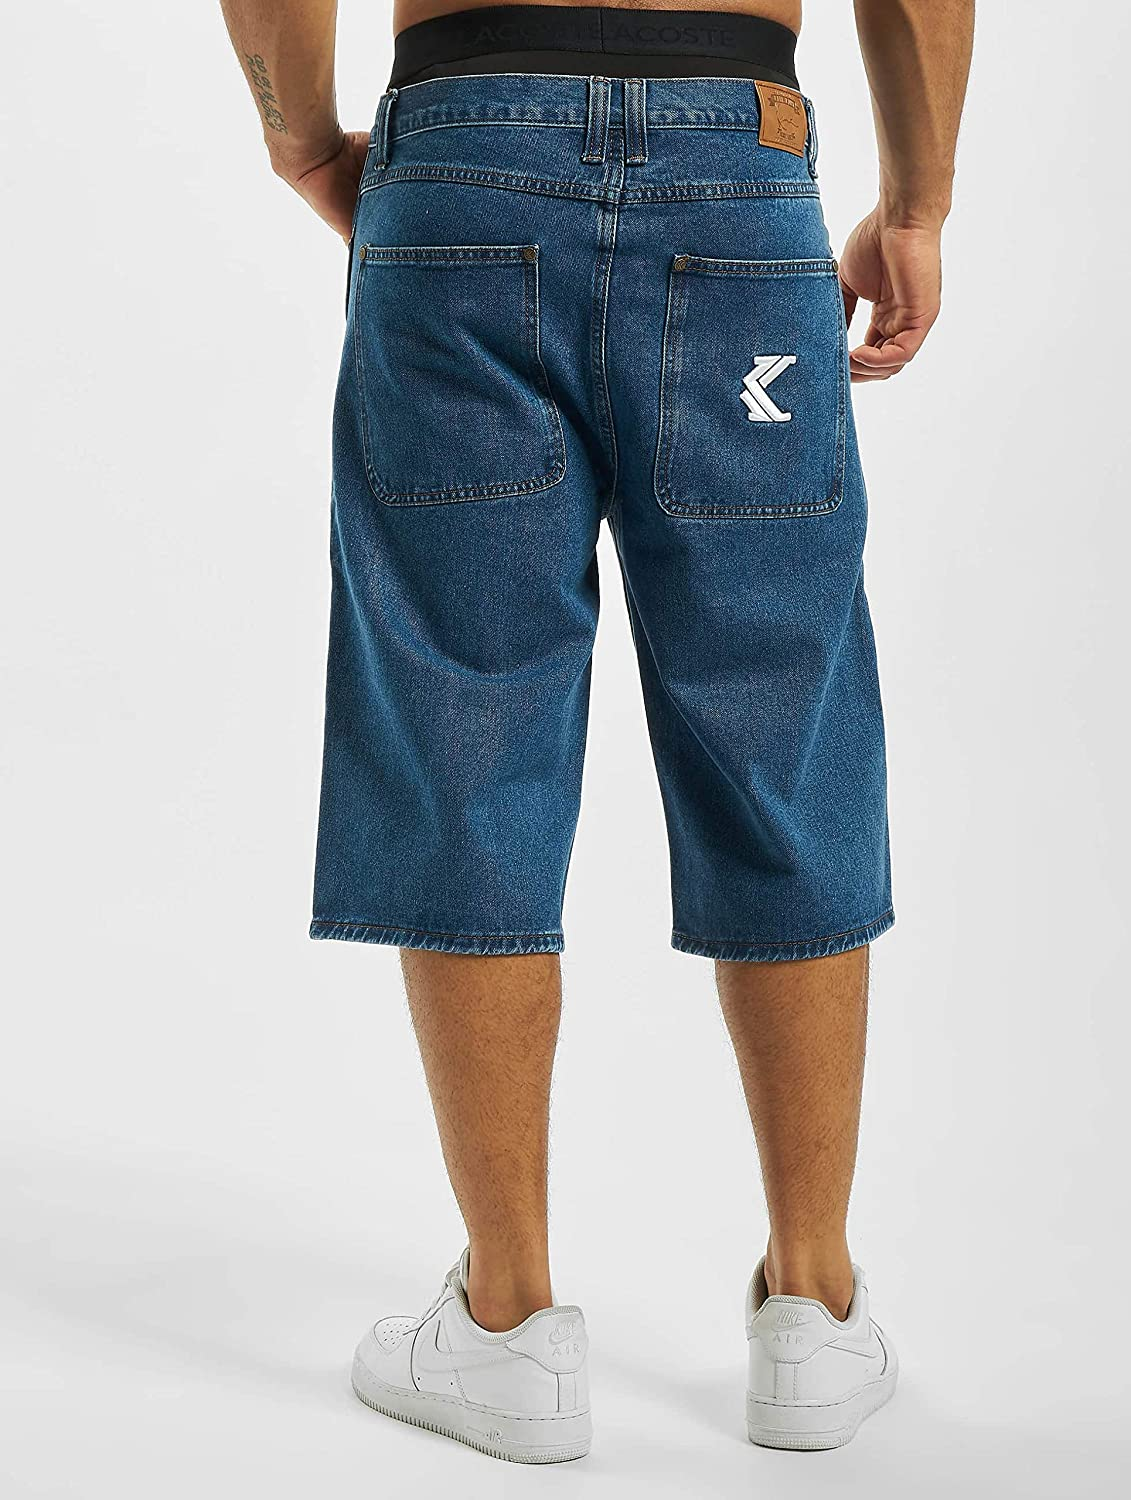 Karl Kani Uomo Shorts Denim